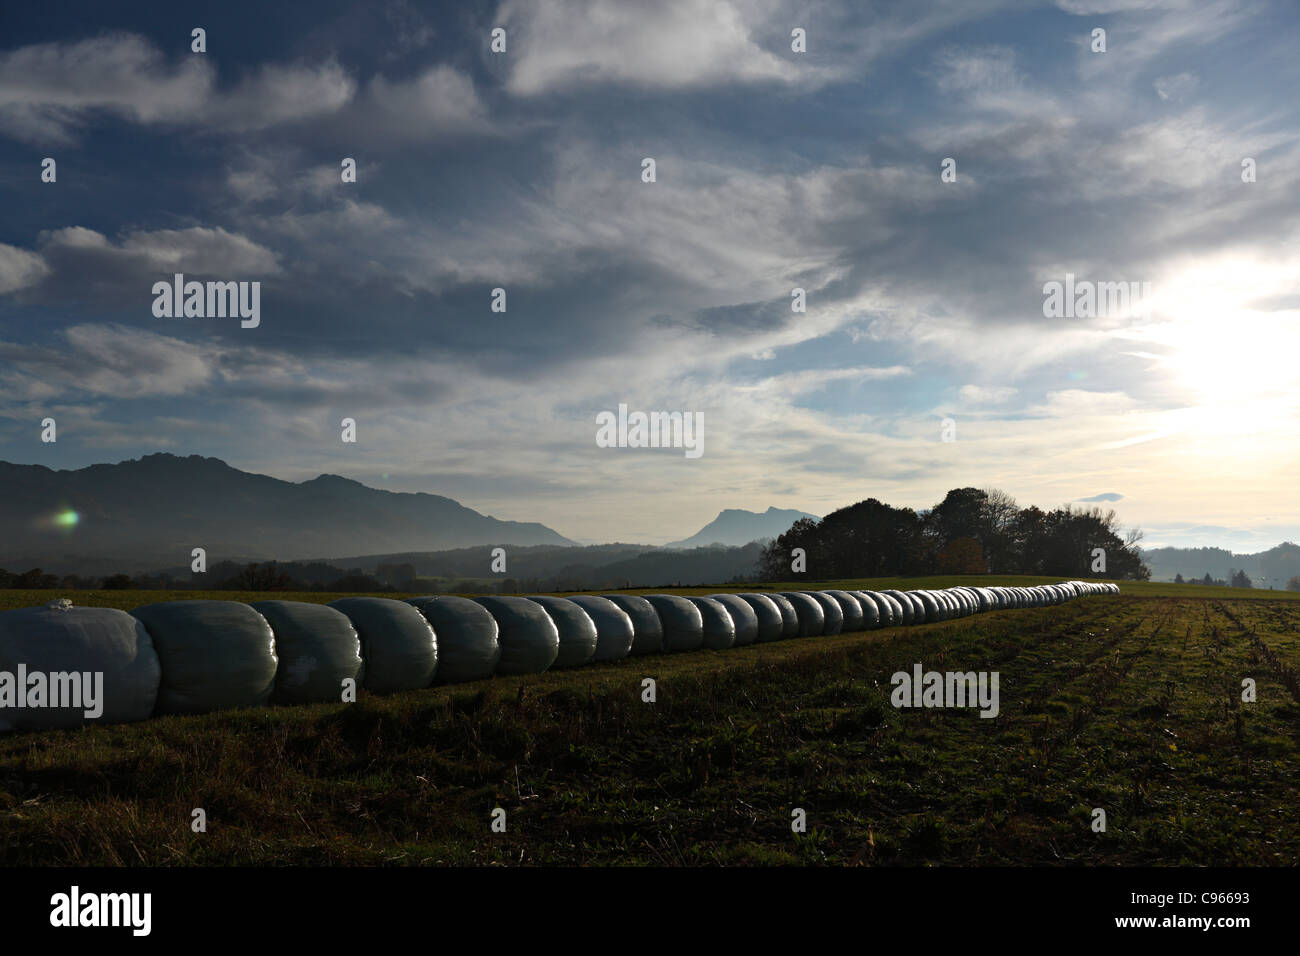 Plastic wrapped bails of hay in Bavarian farm landscape, Chiemgau Upper Bavaria Germany - Stock Image